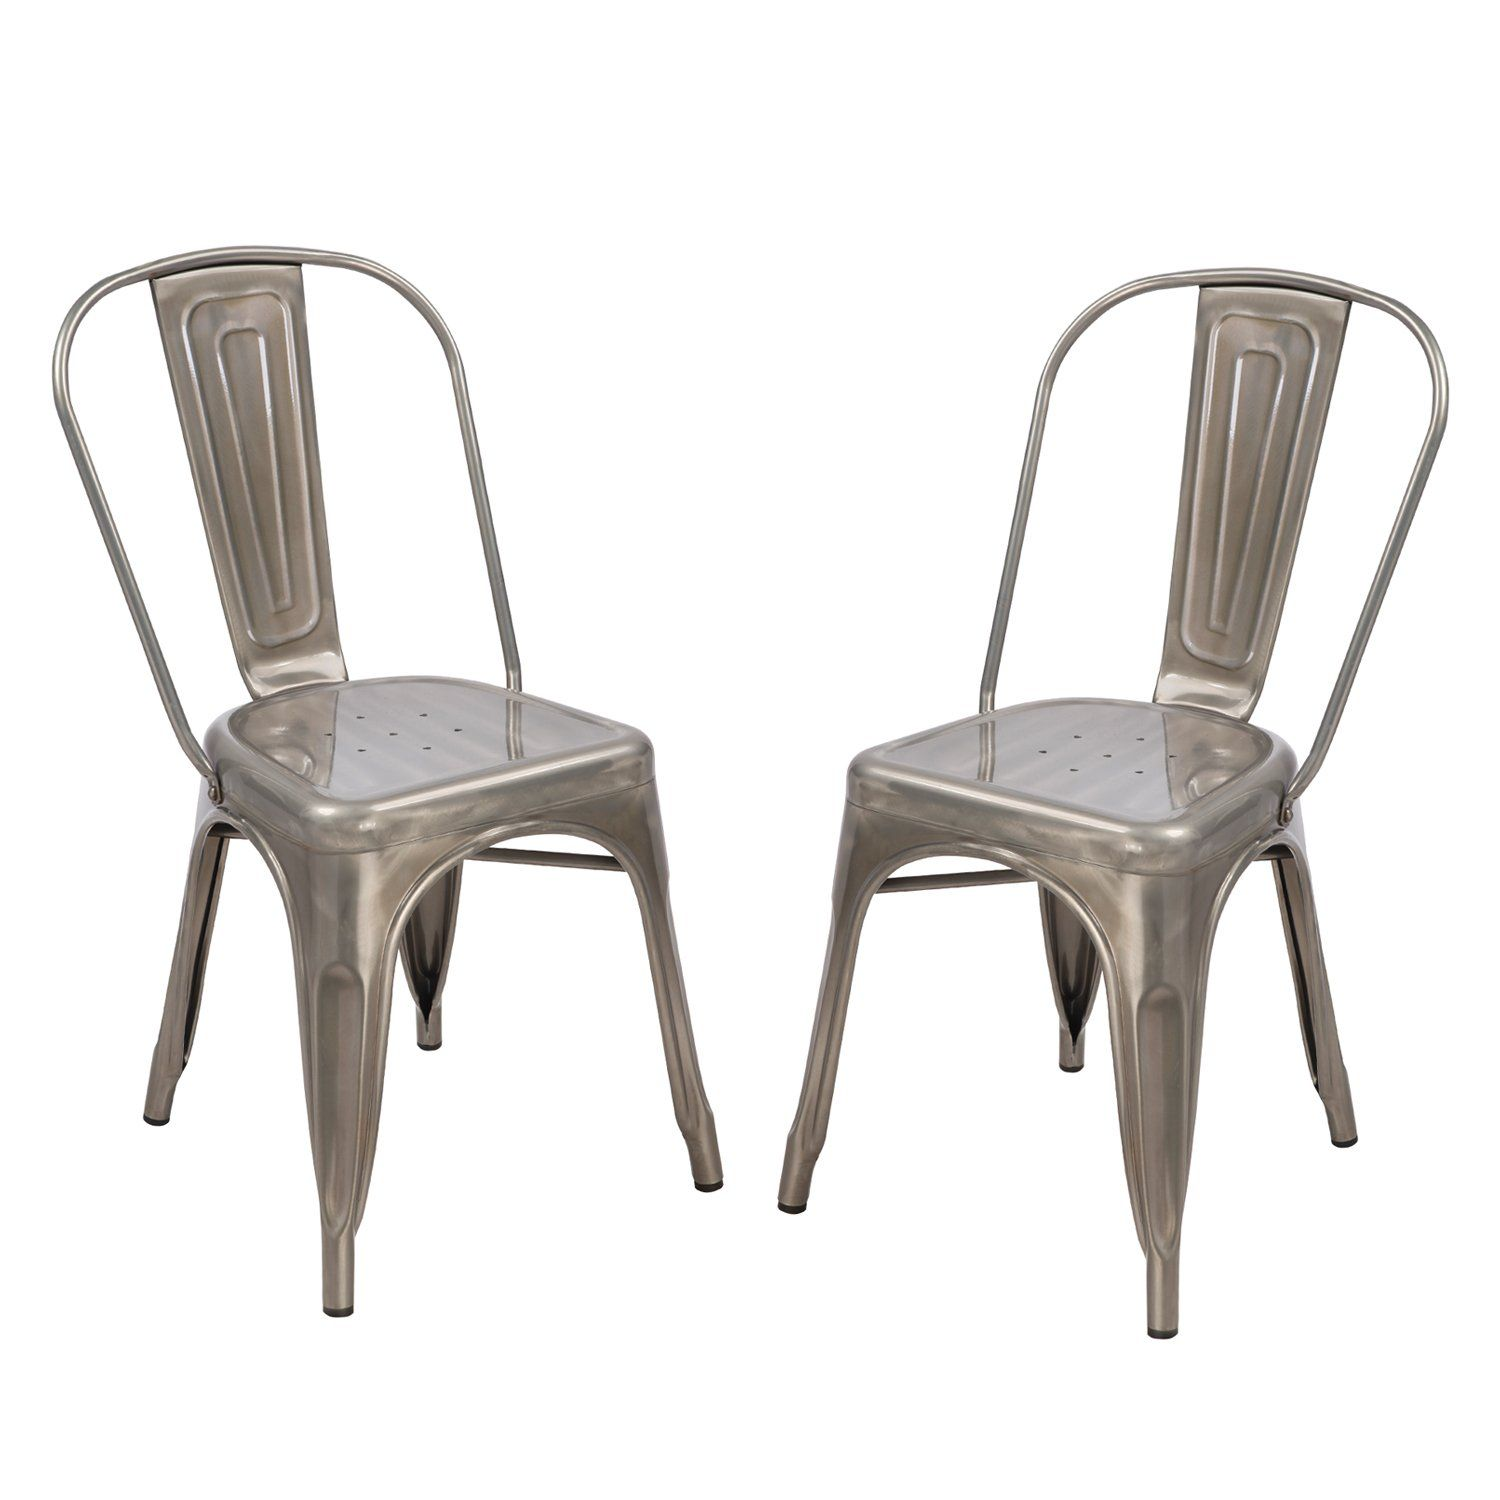 Amazon Dining Chairs: TOP SELLER! Adeco Silver Gunmetal Stackable